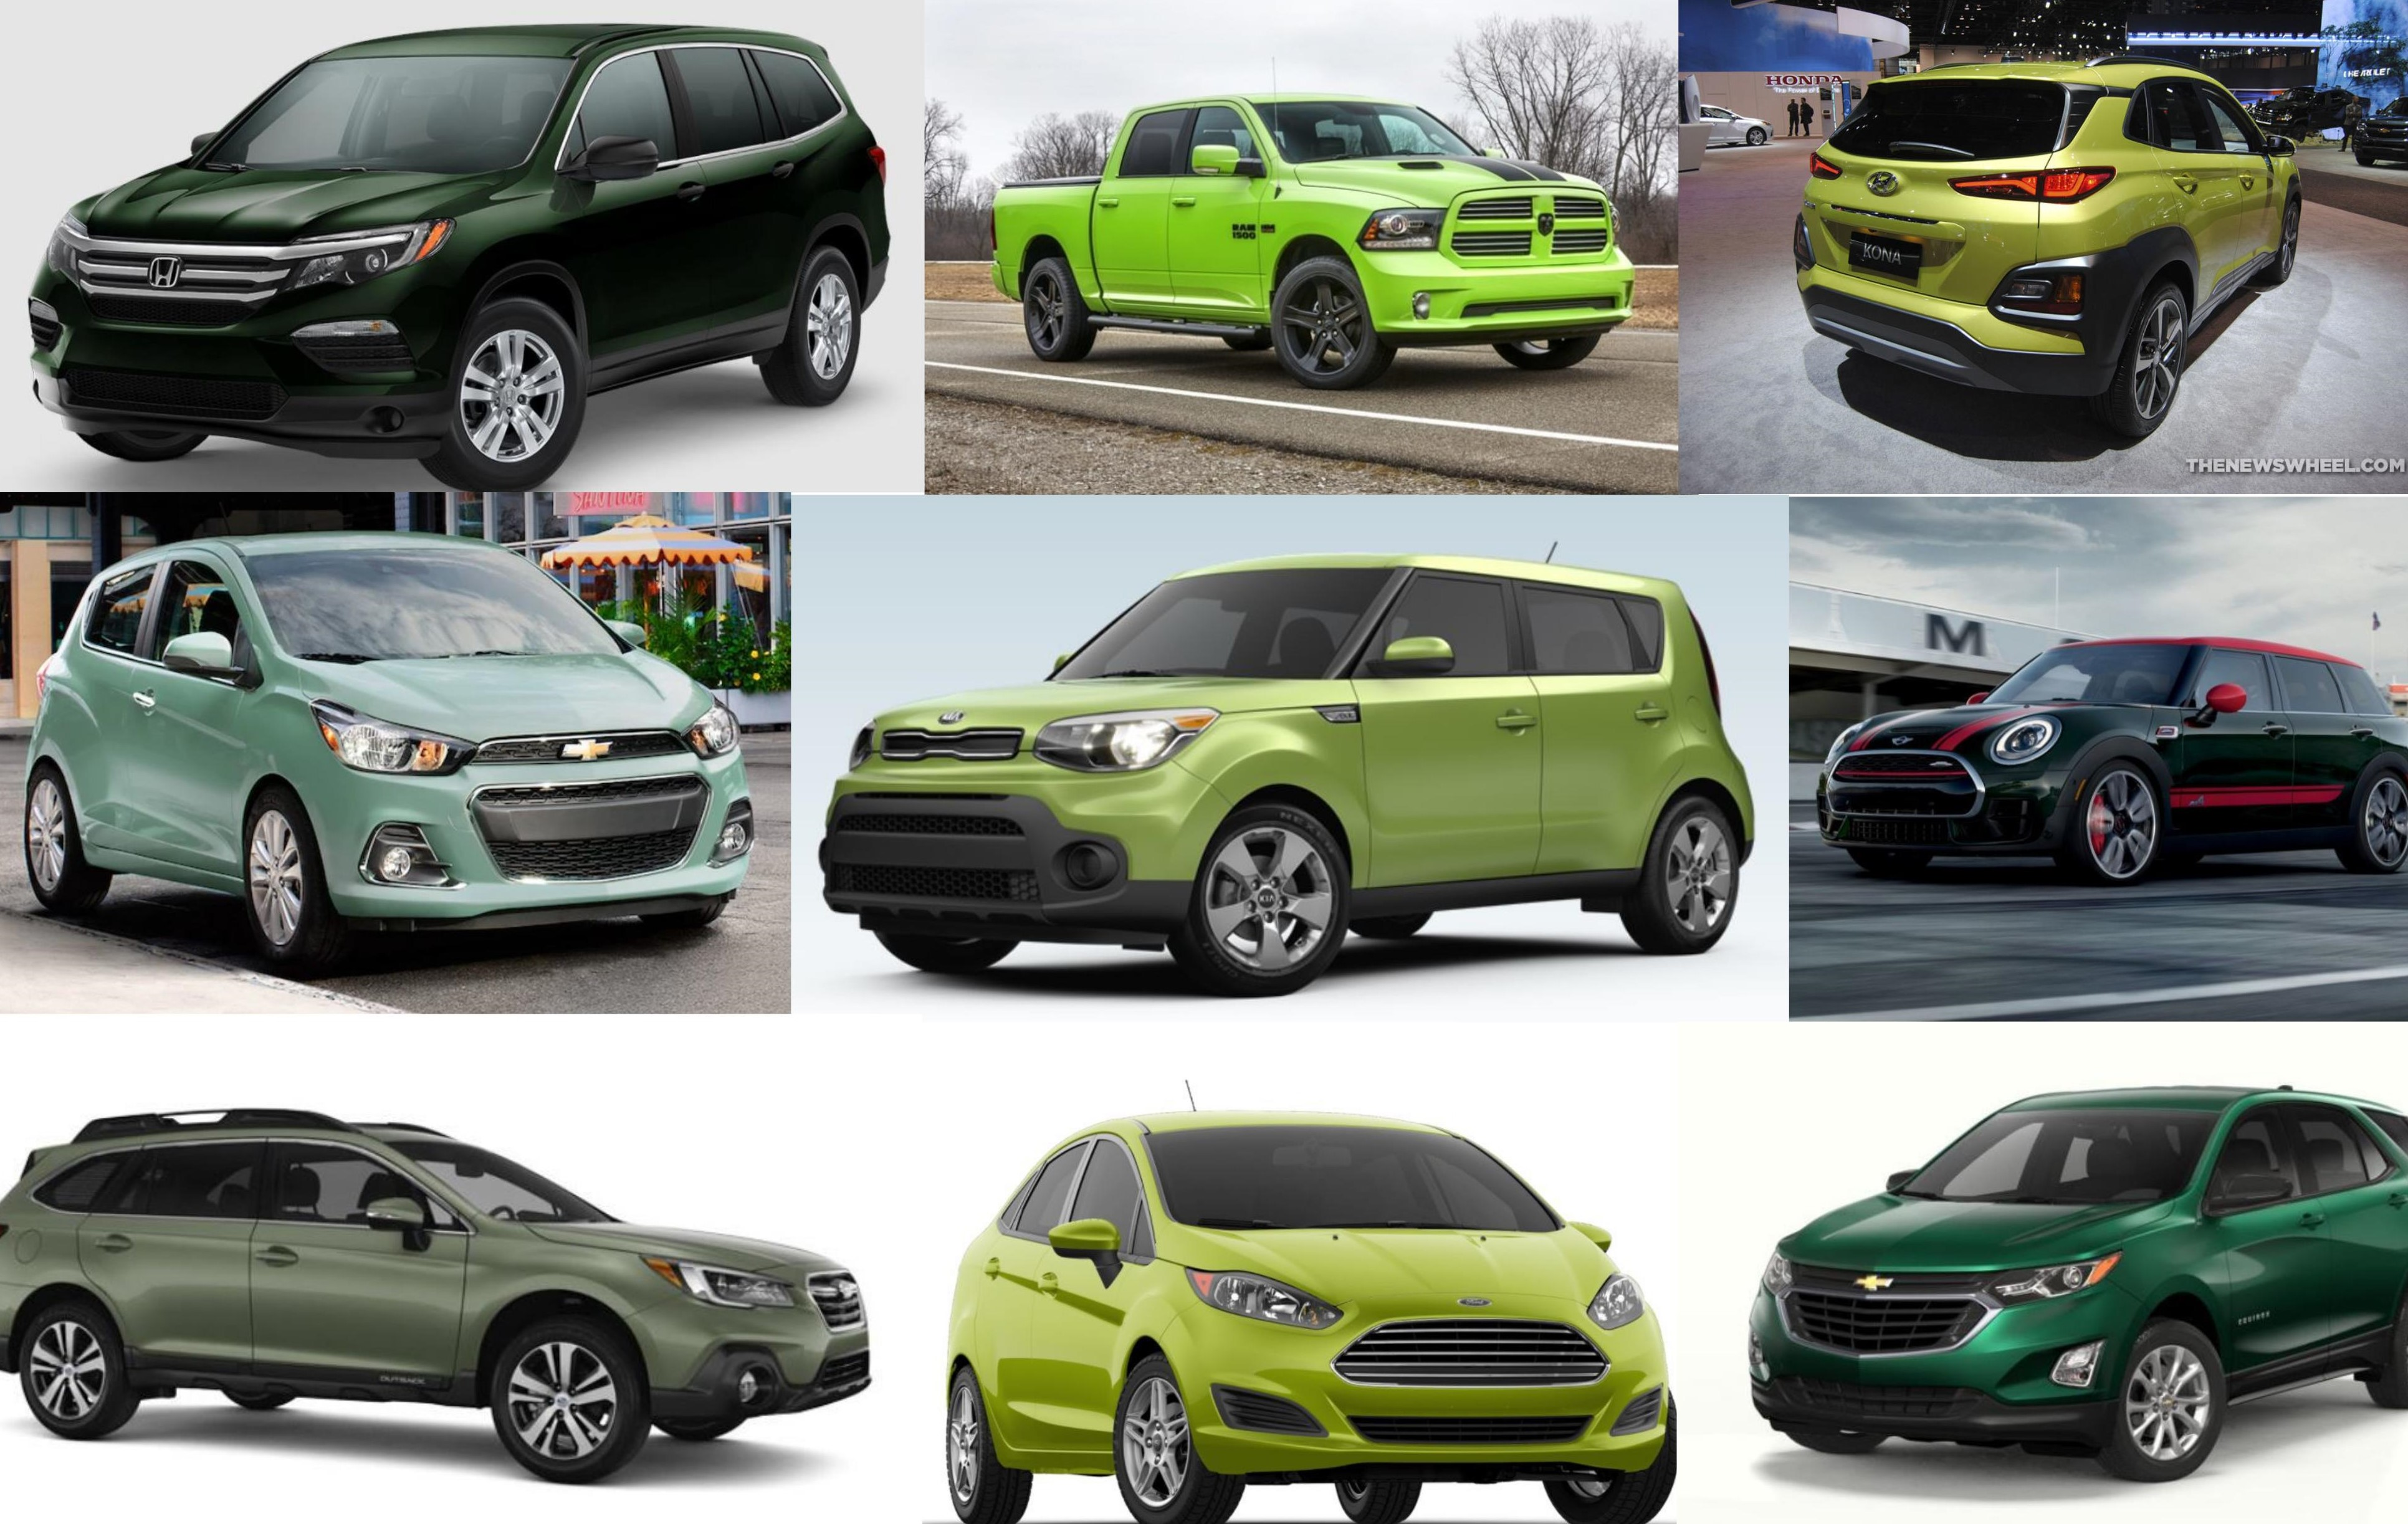 Captivating Car Colors Which 2018 Models Are Available In Green The News Wheel